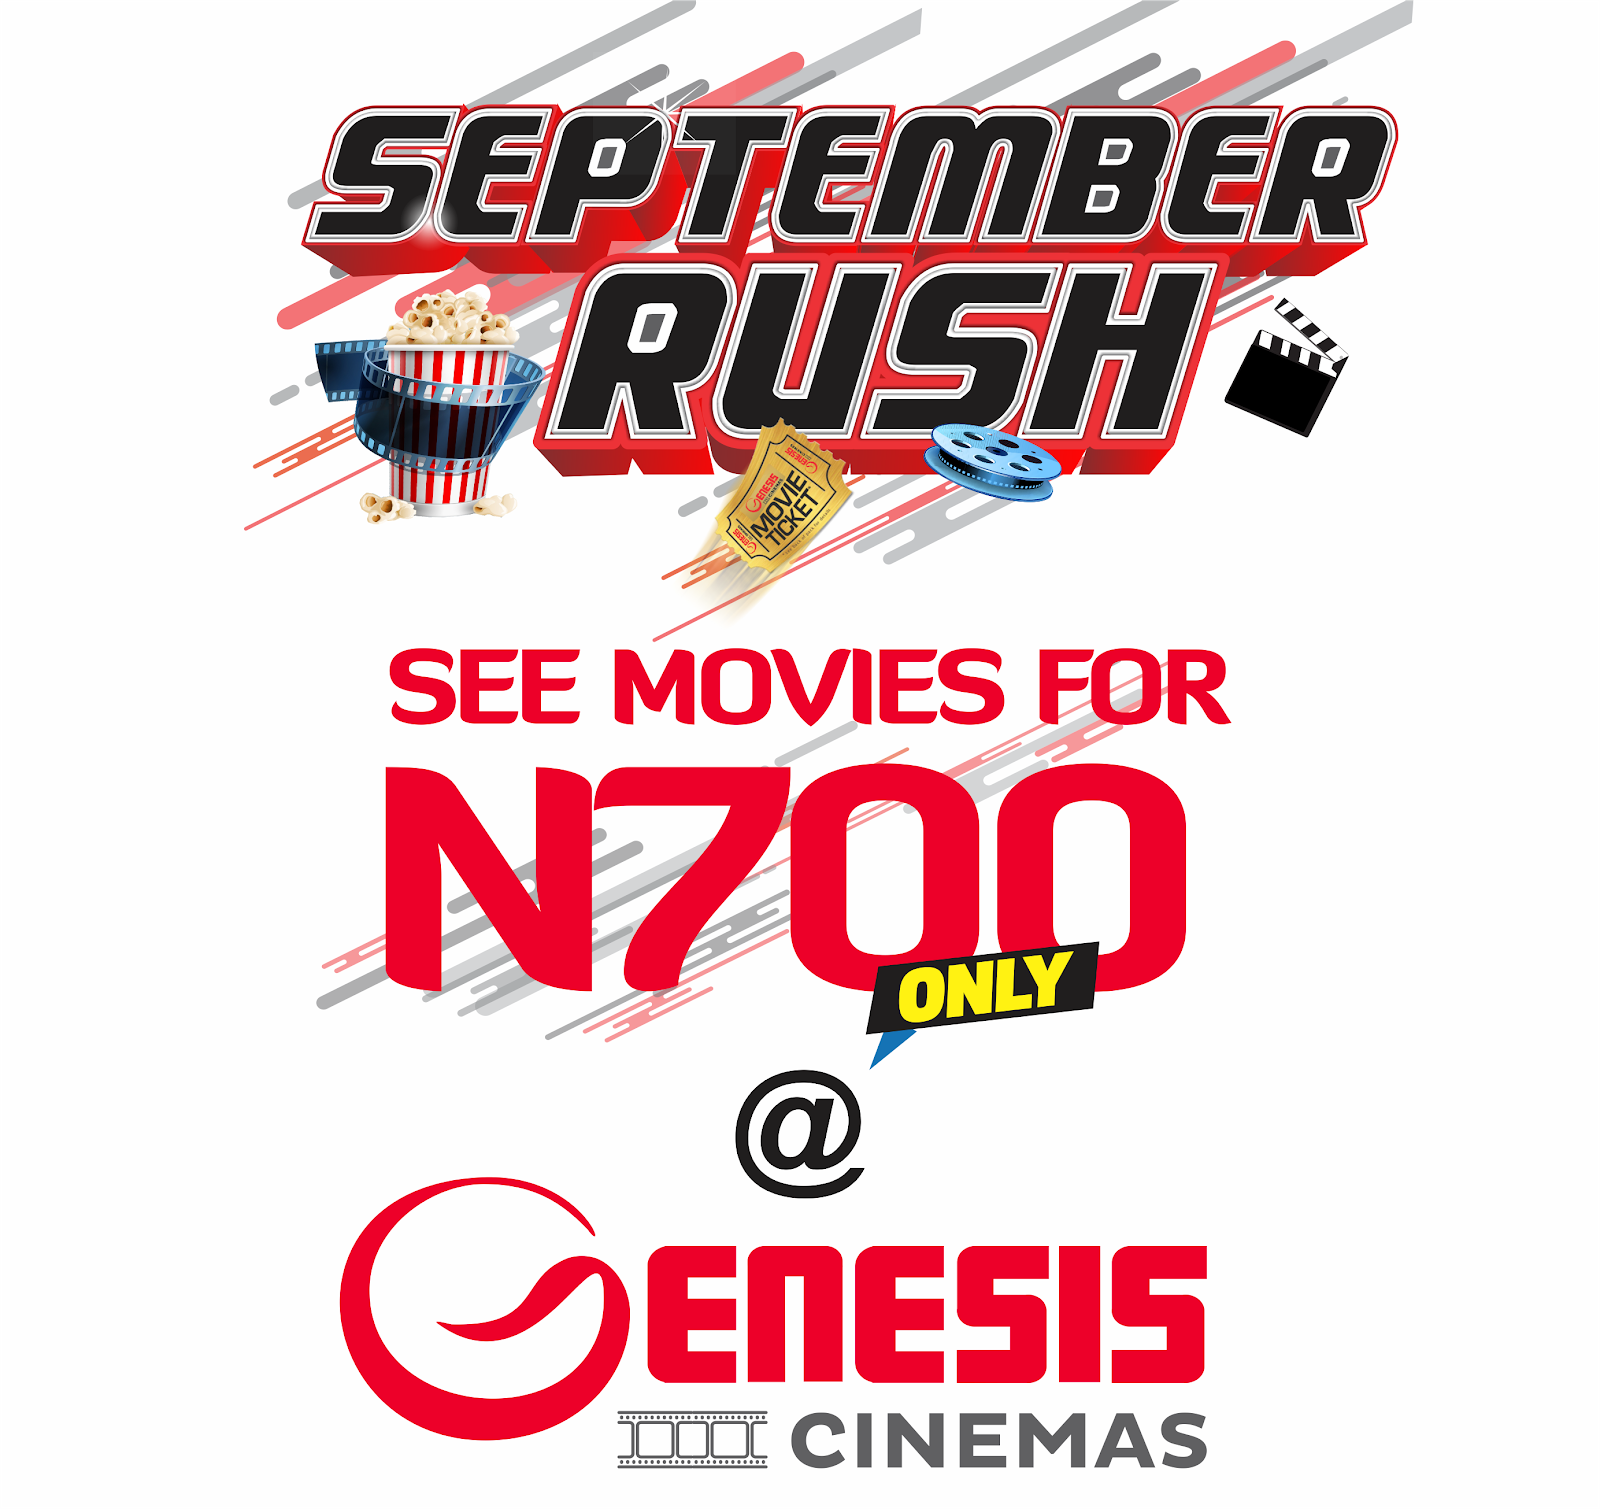 SEPTEMBER RUSH AT GENESIS CINEMAS